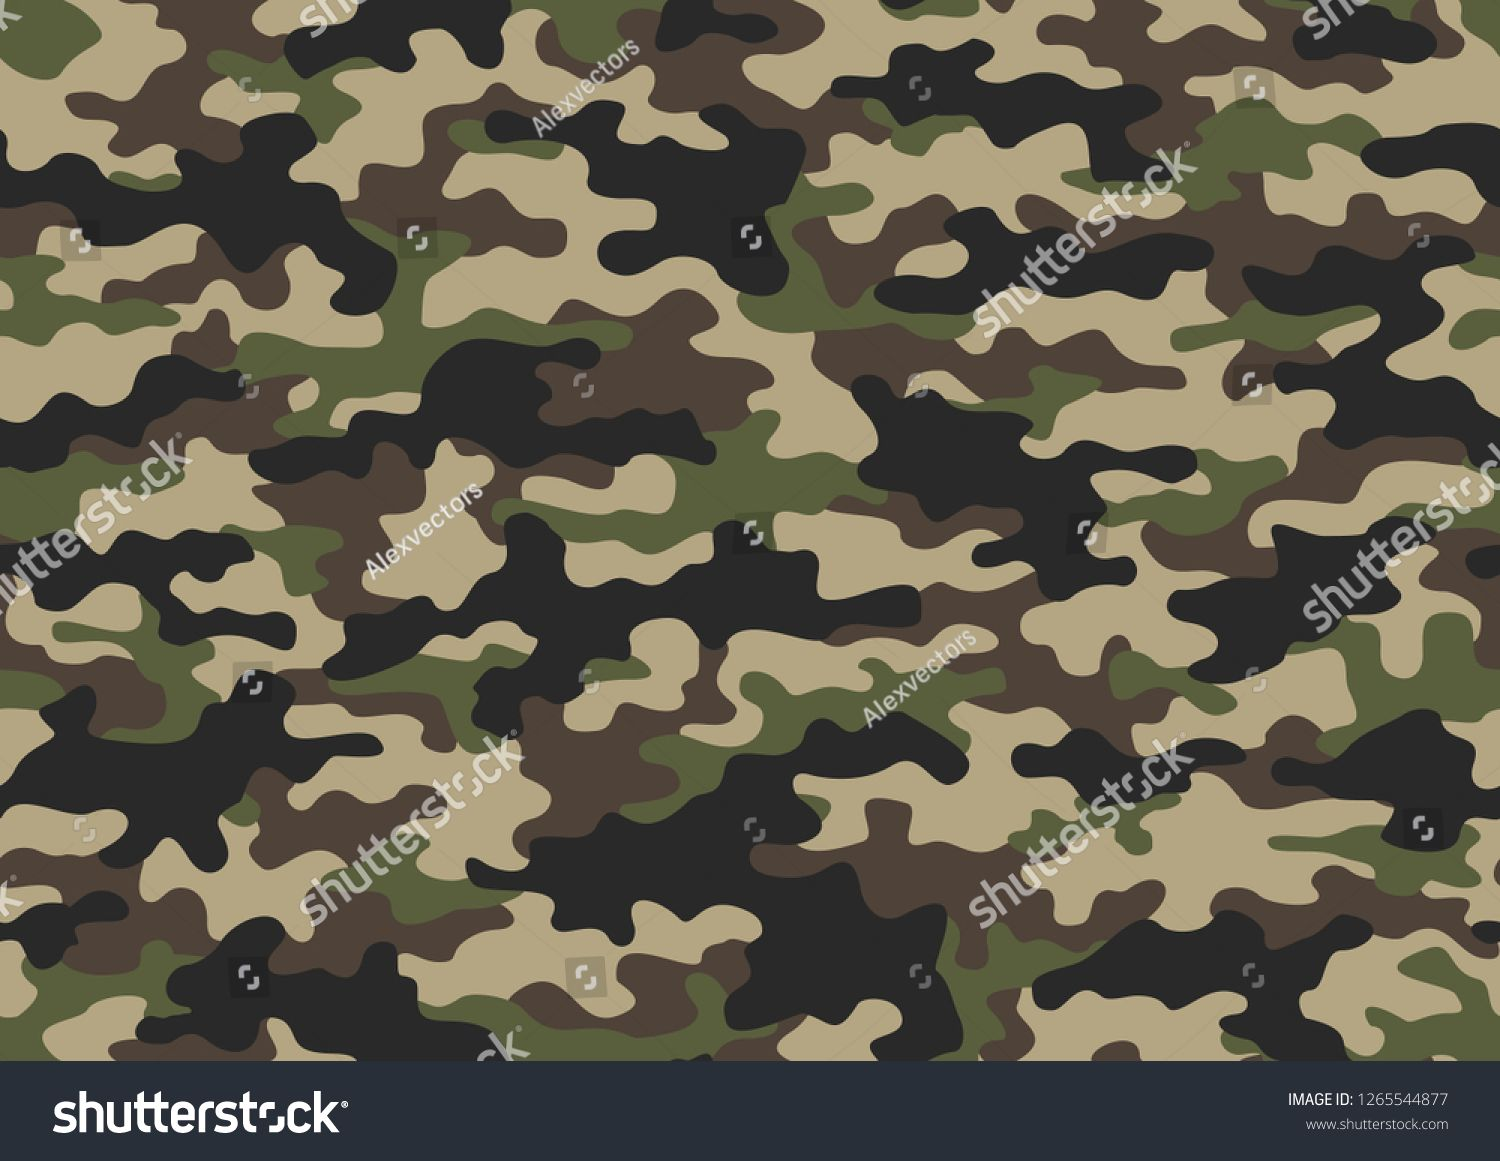 Texture Military Camouflage Seamless Pattern Abstract Army And